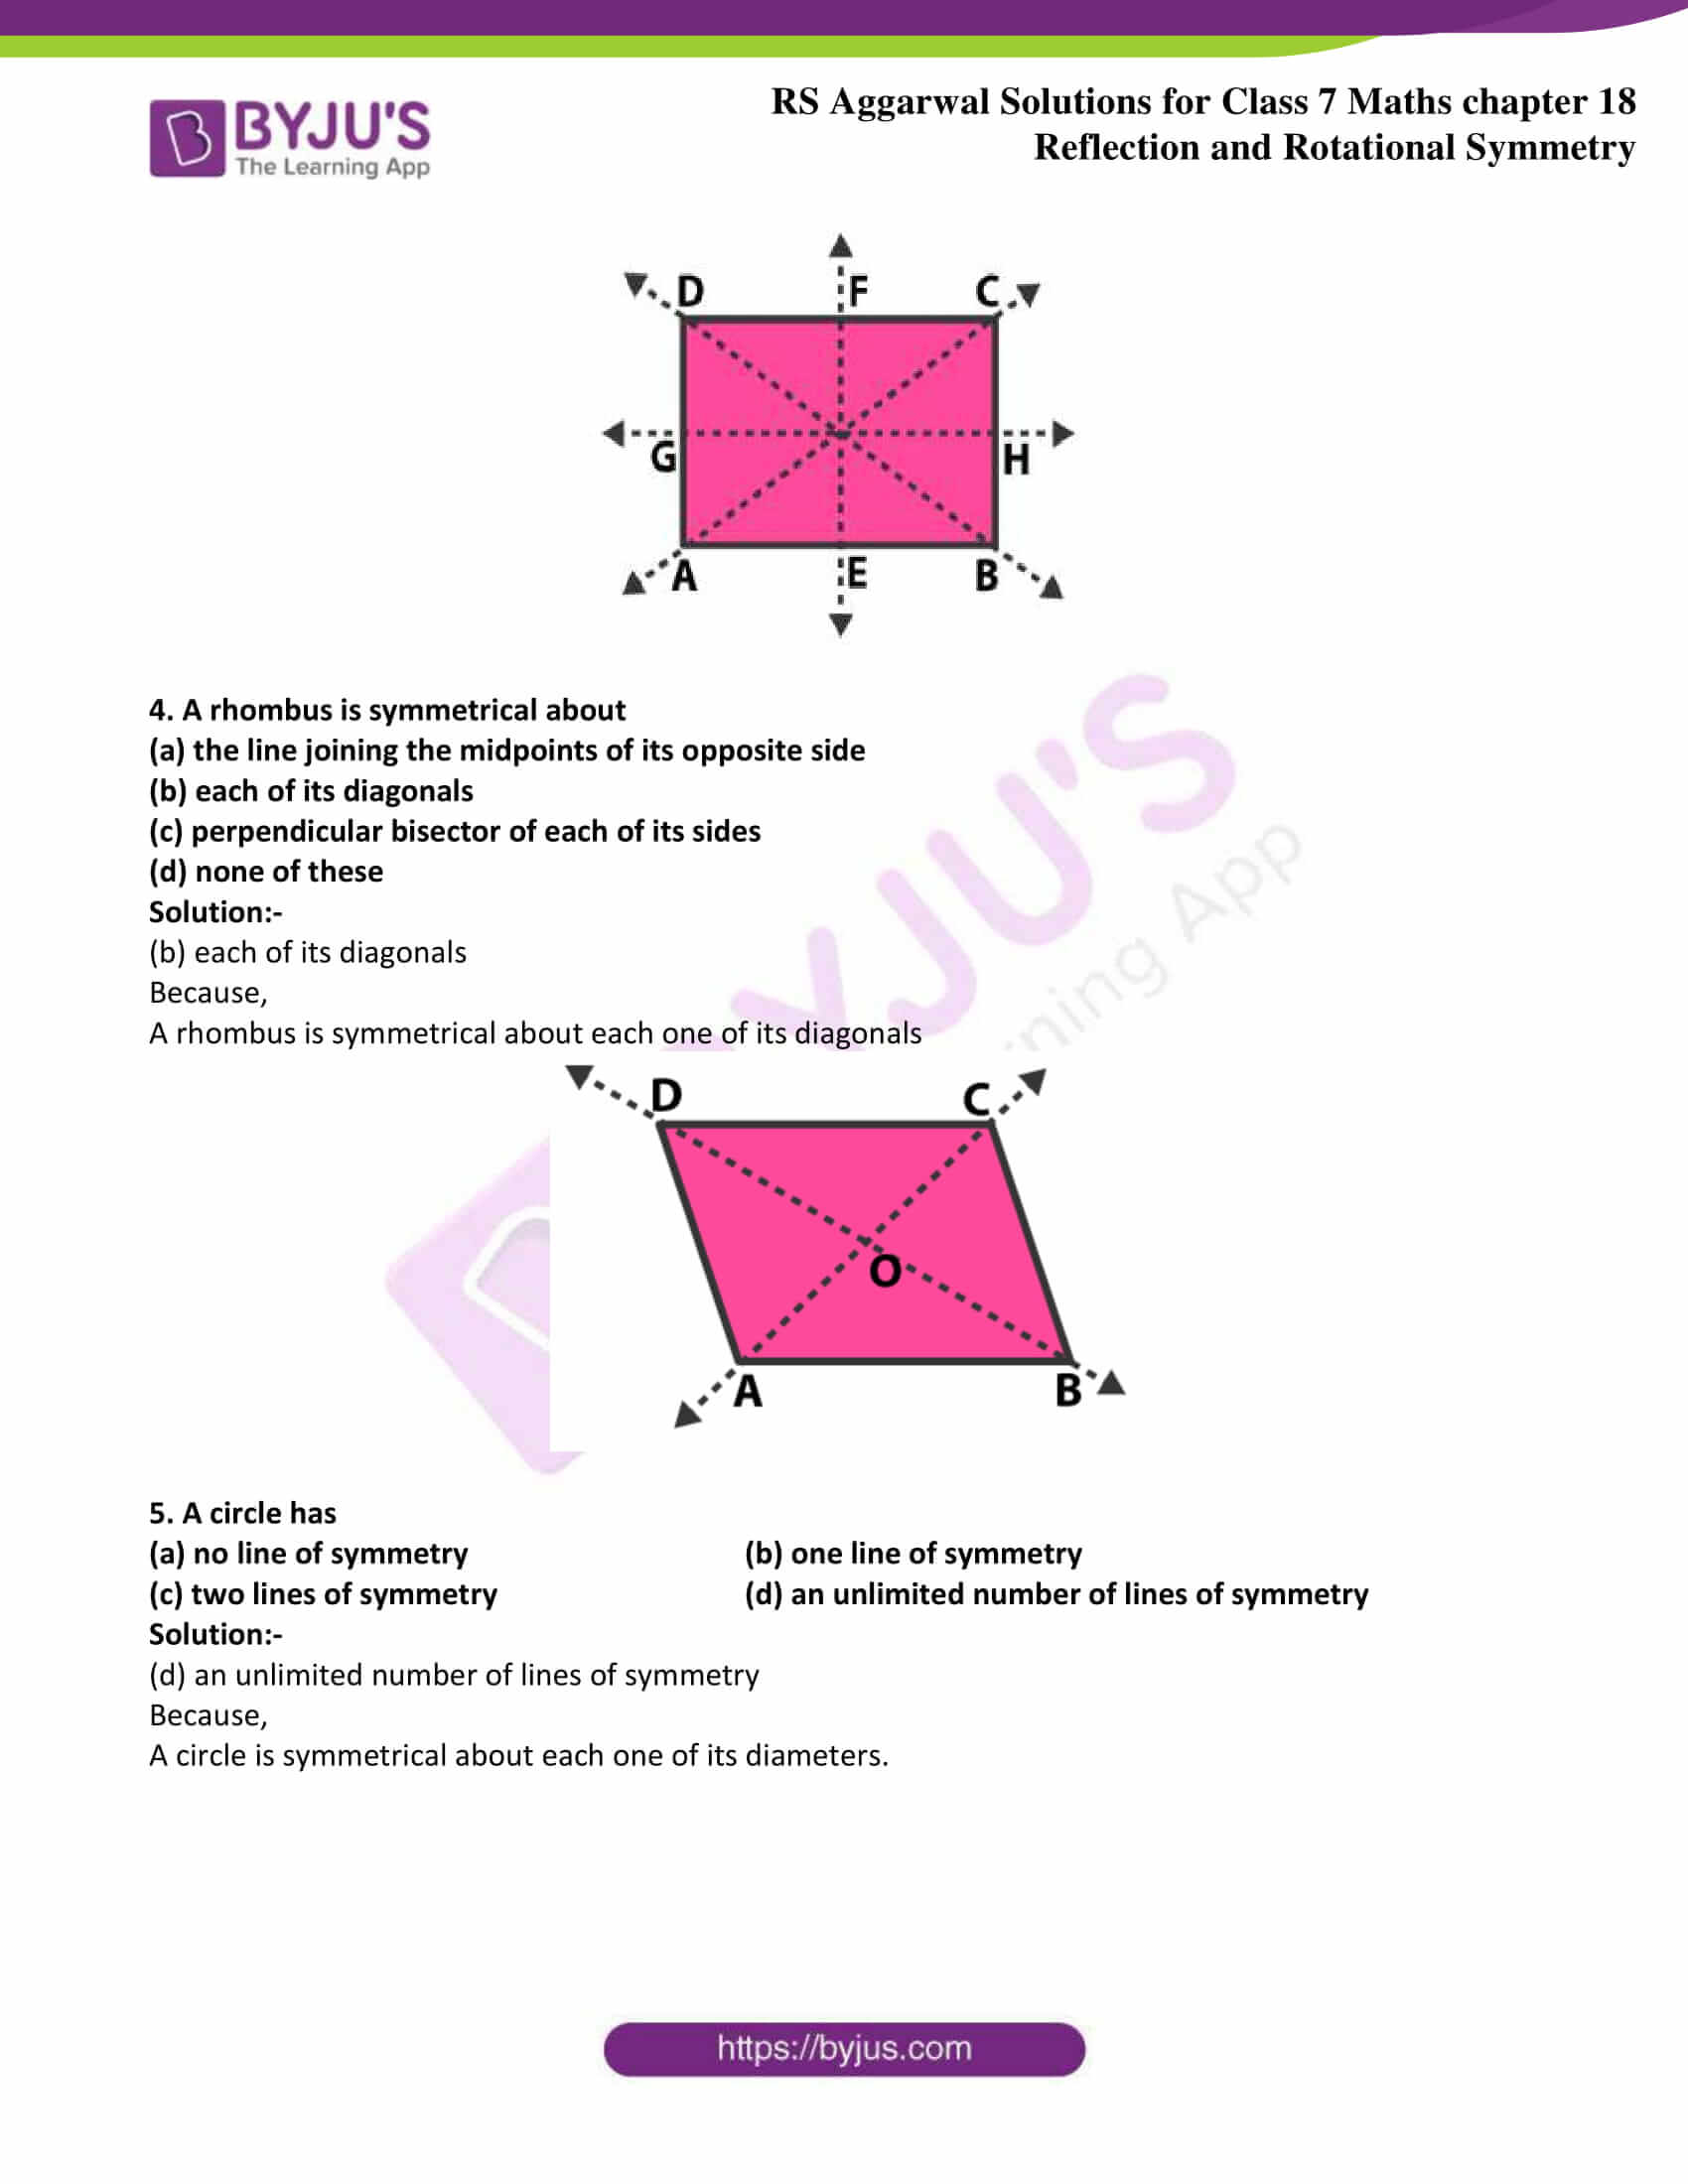 rs aggarwal solution class 7 maths chapter 18 Exercise 18A